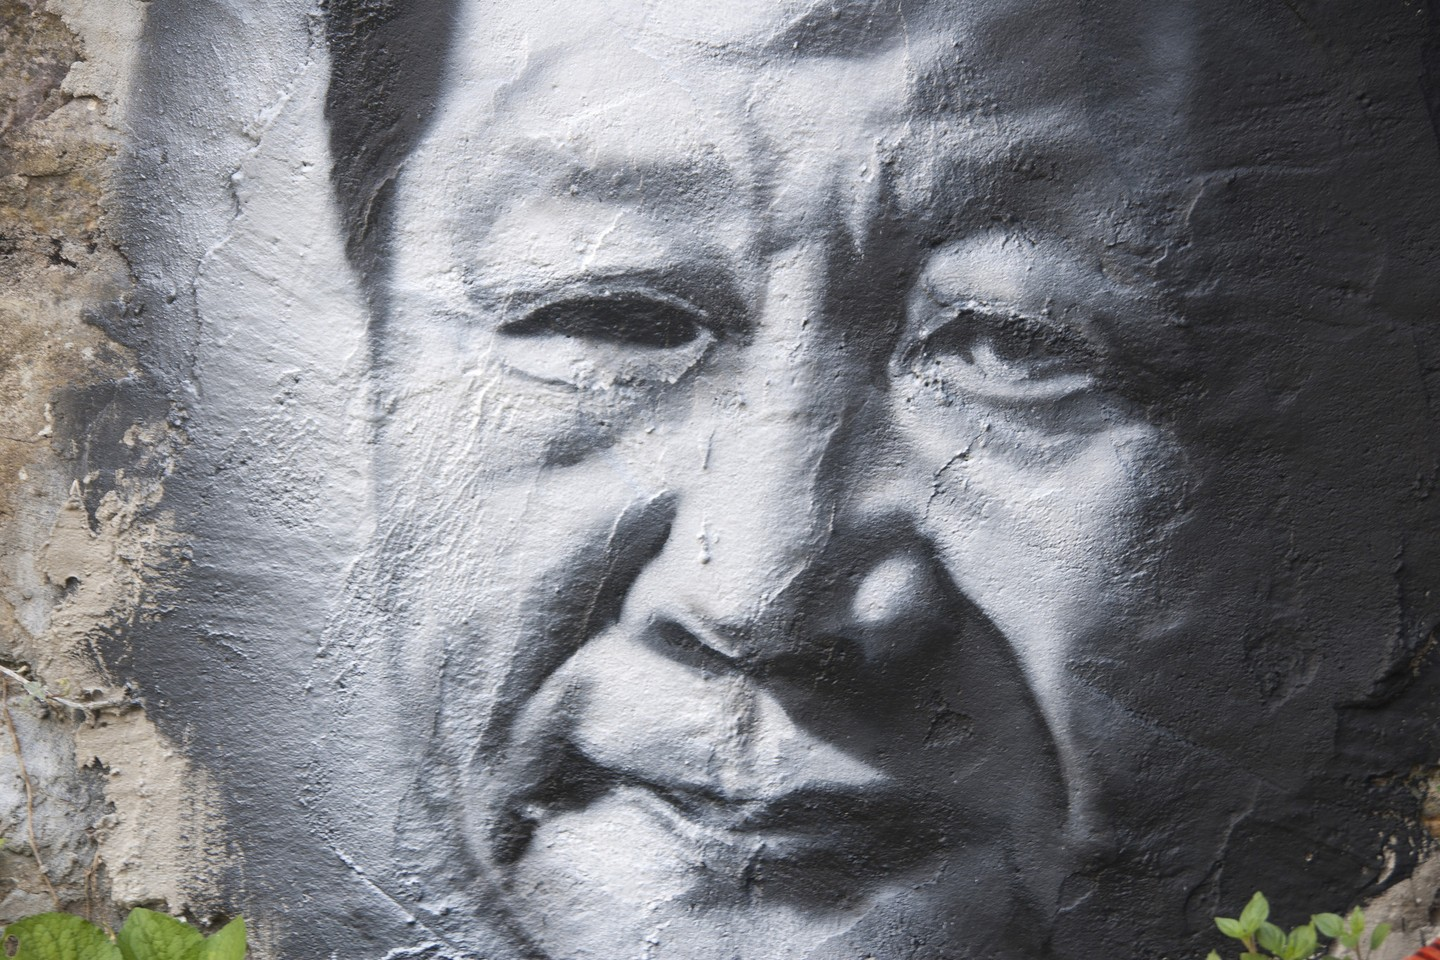 Xi Jinping by Abode of Chaos artist Thierry Ehrmann